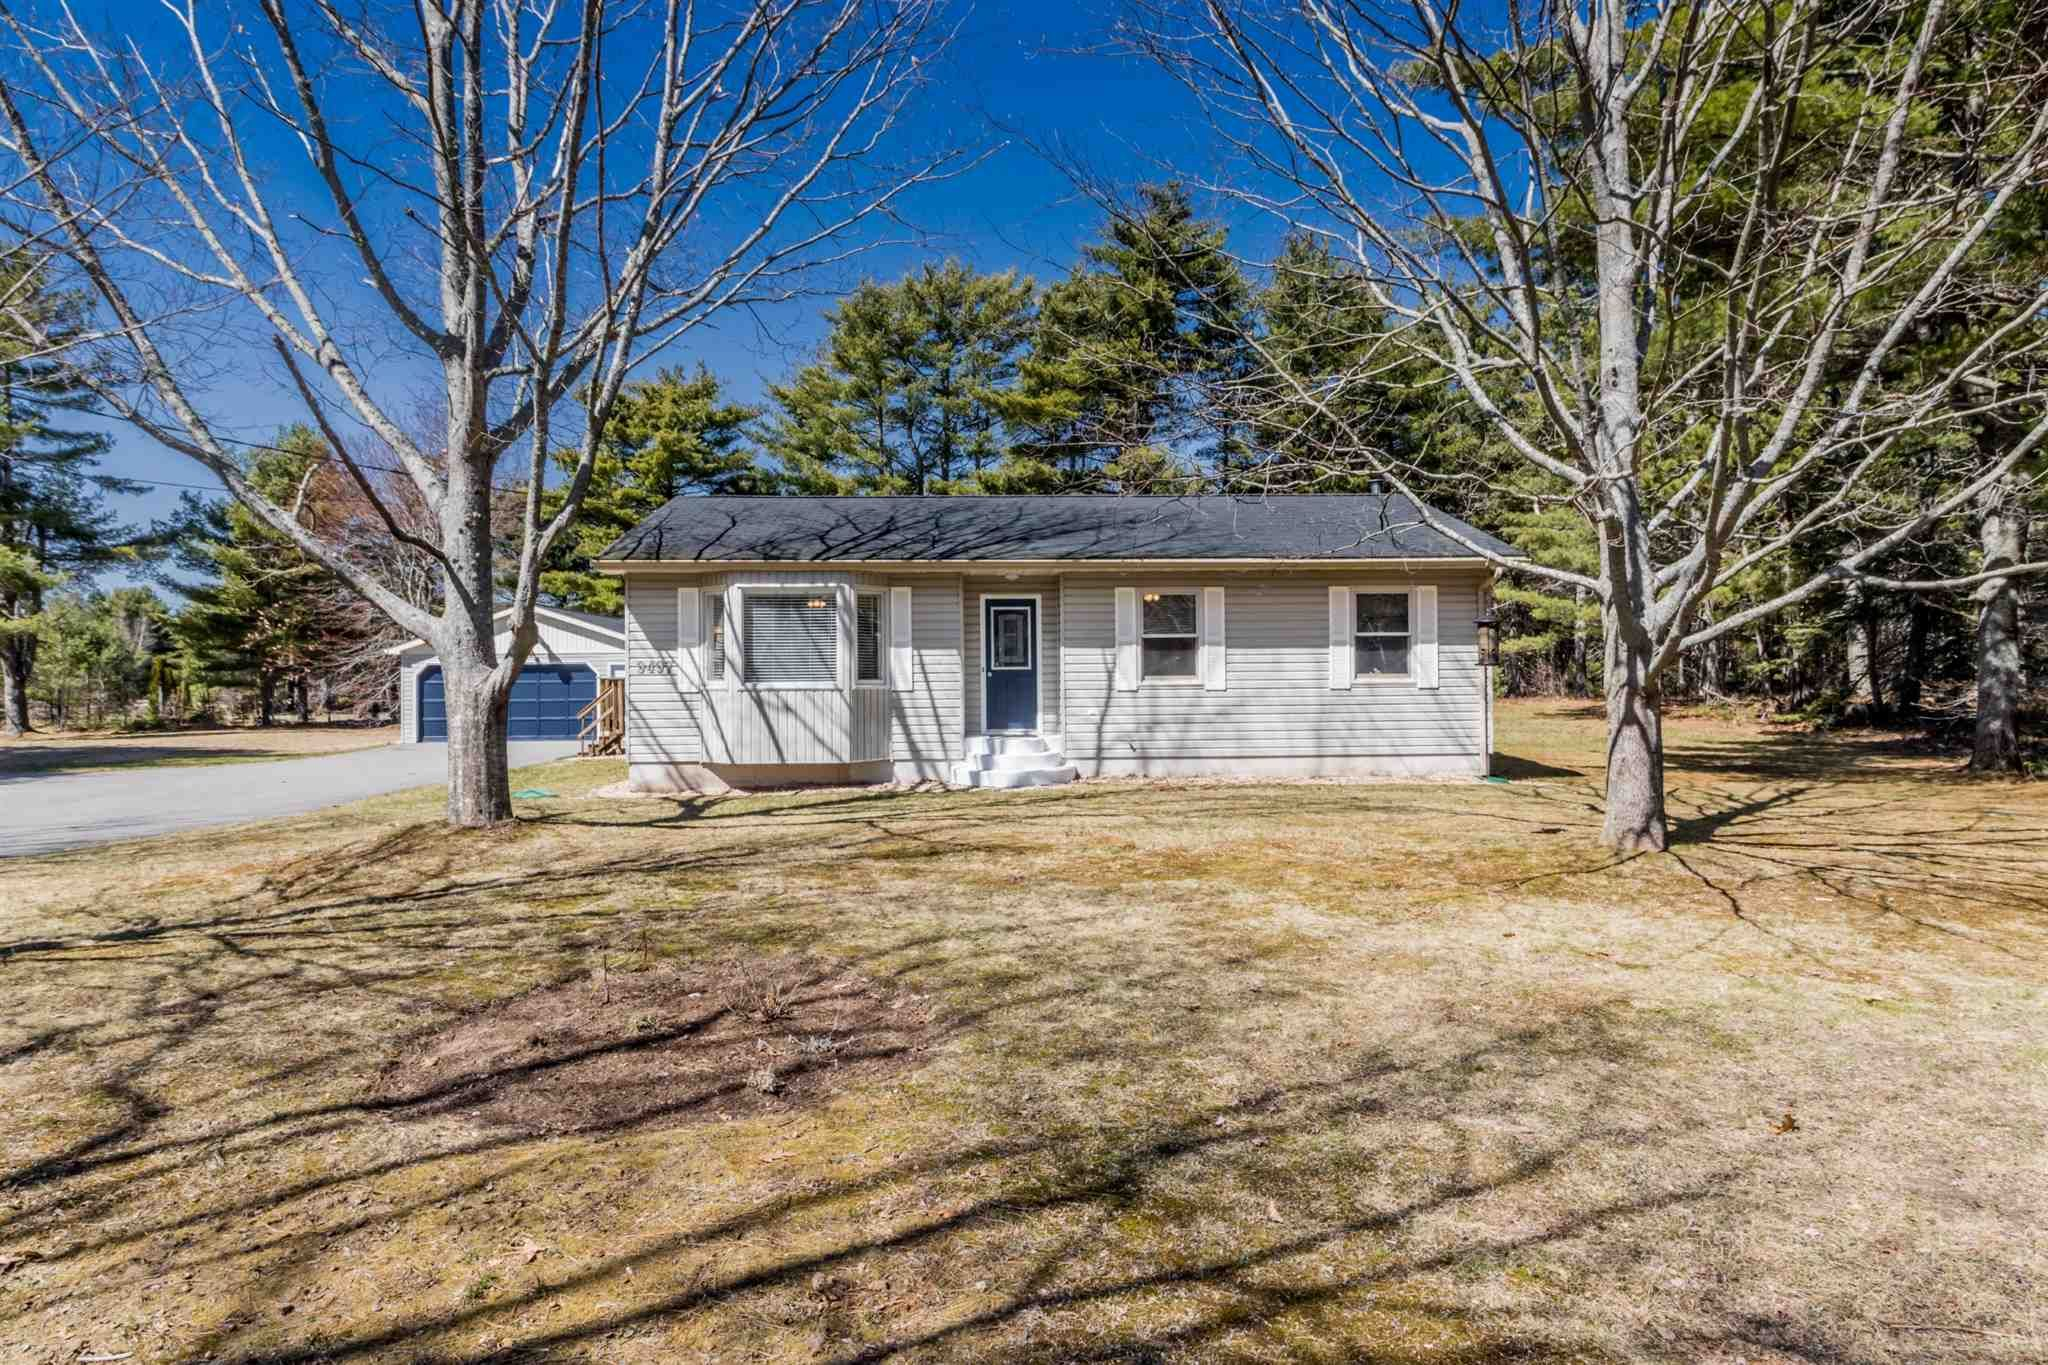 Main Photo: 9497 Highway 201 in South Farmington: 400-Annapolis County Residential for sale (Annapolis Valley)  : MLS®# 202109594